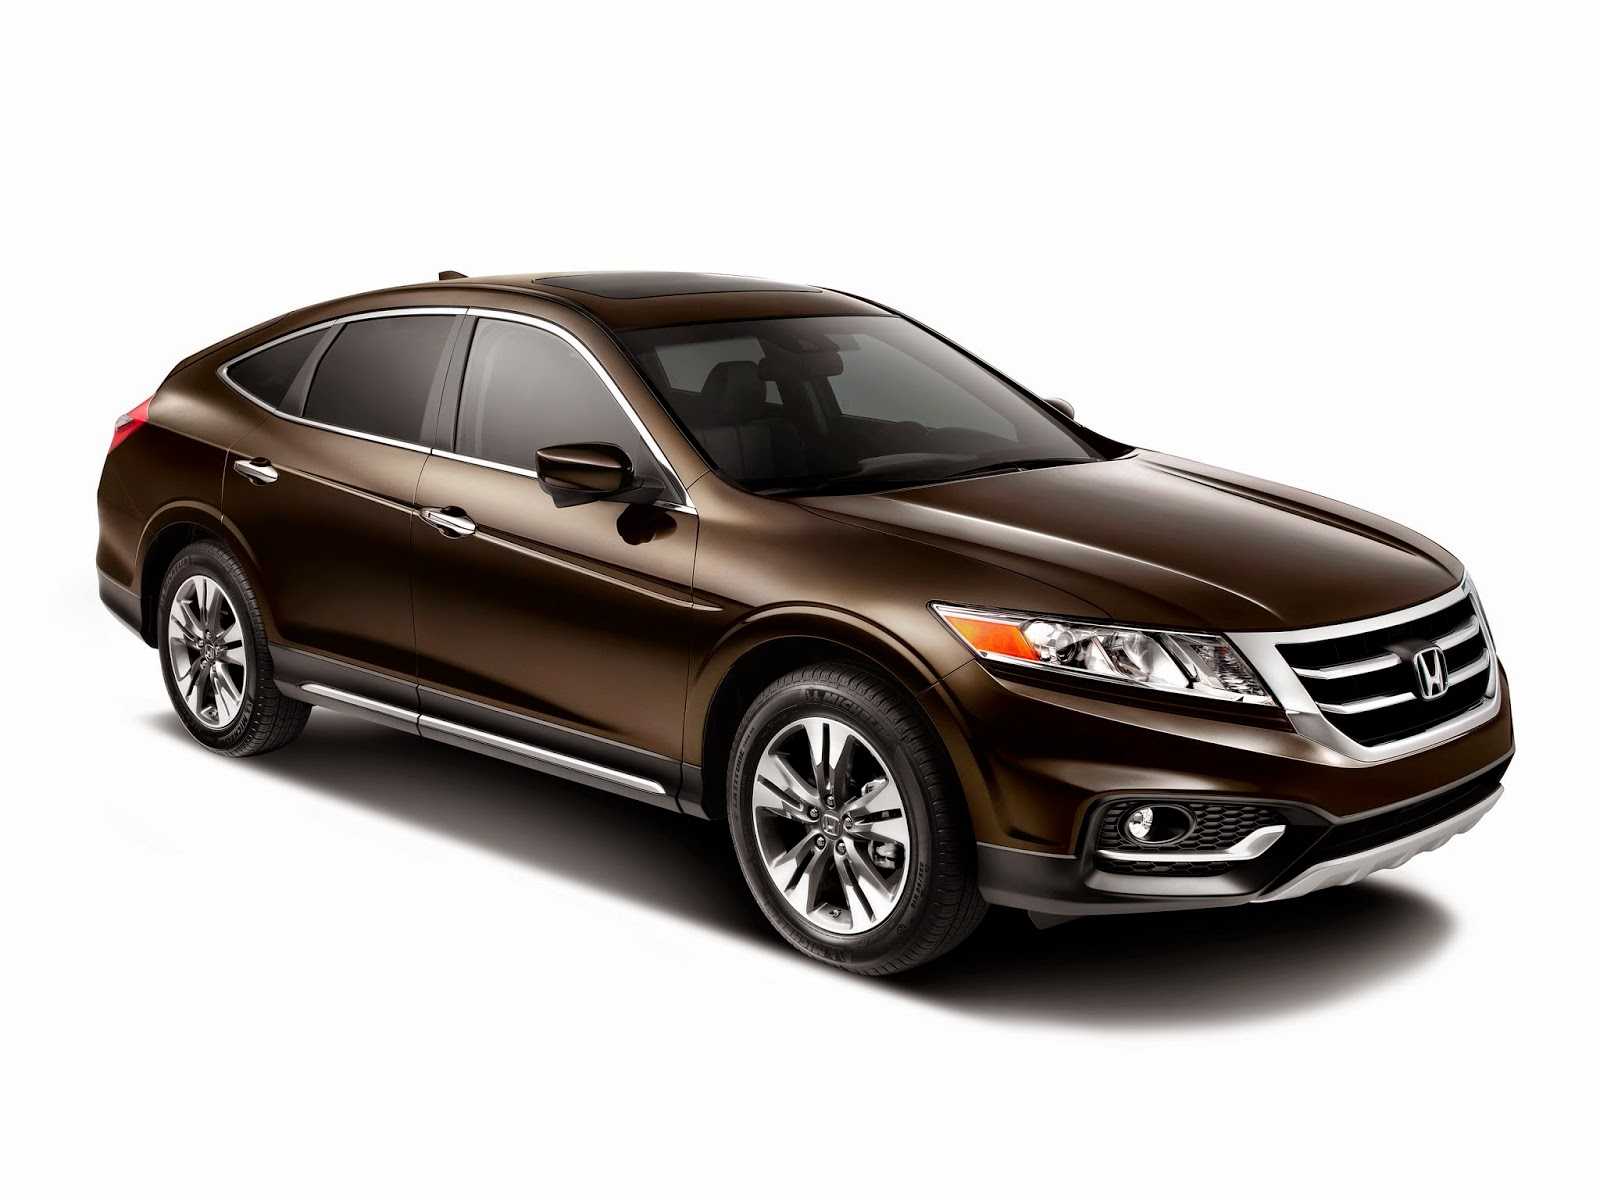 Front 3/4 view of 2014 Honda Crosstour